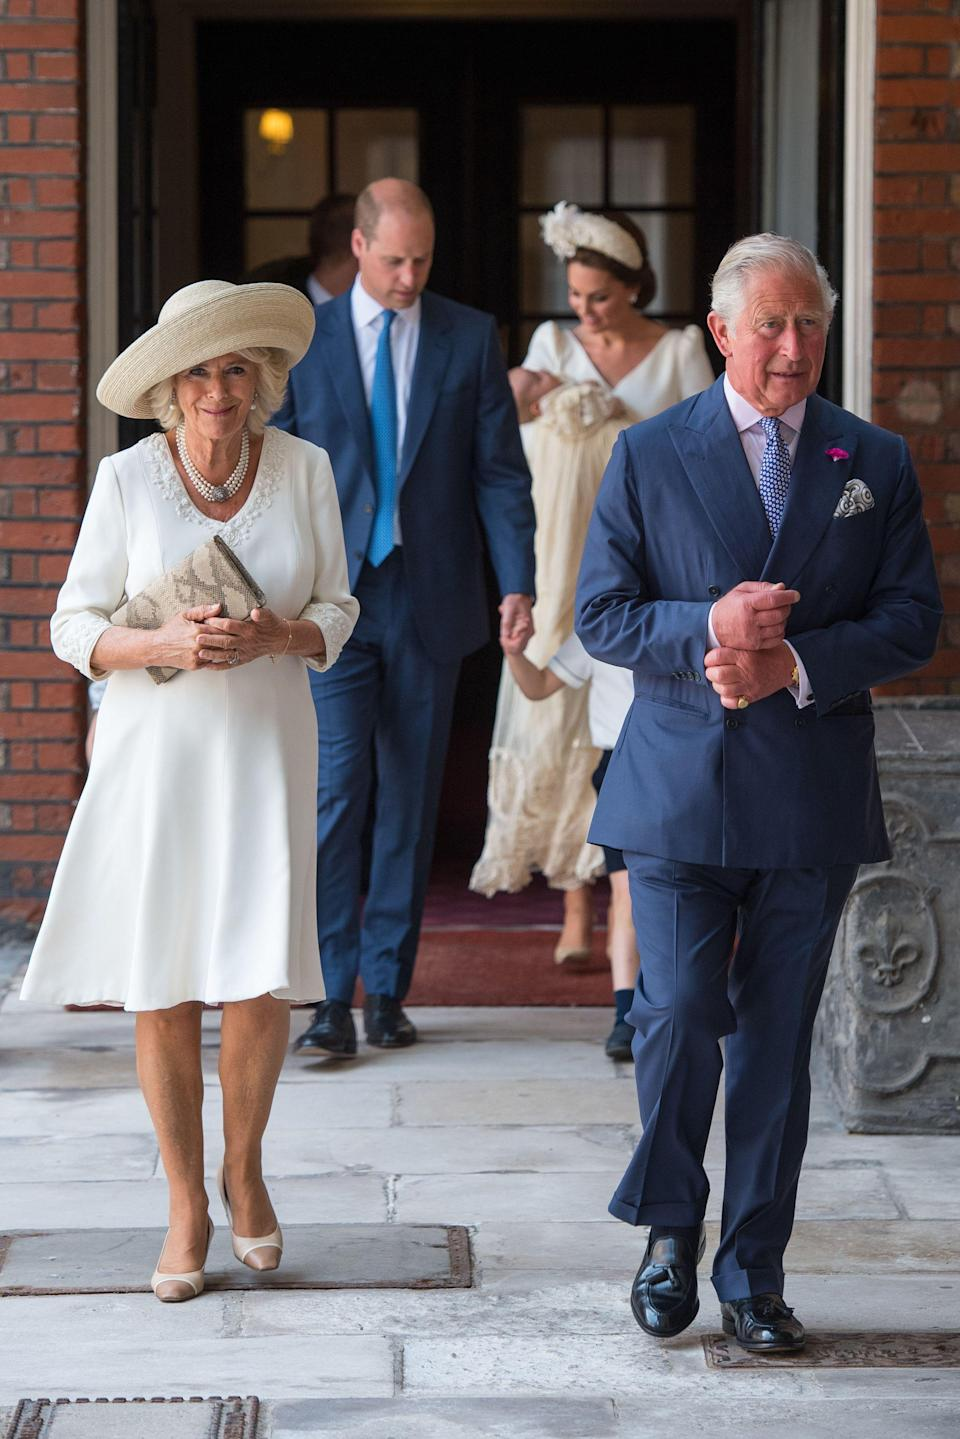 It's even rumoured that Prince Charles' wife, Camilla Parker Bowles, has begun to mimic her husband's demands and brings her own drink with her when she travels, so there's no fear of either of them being spiked. Photo: Getty Images